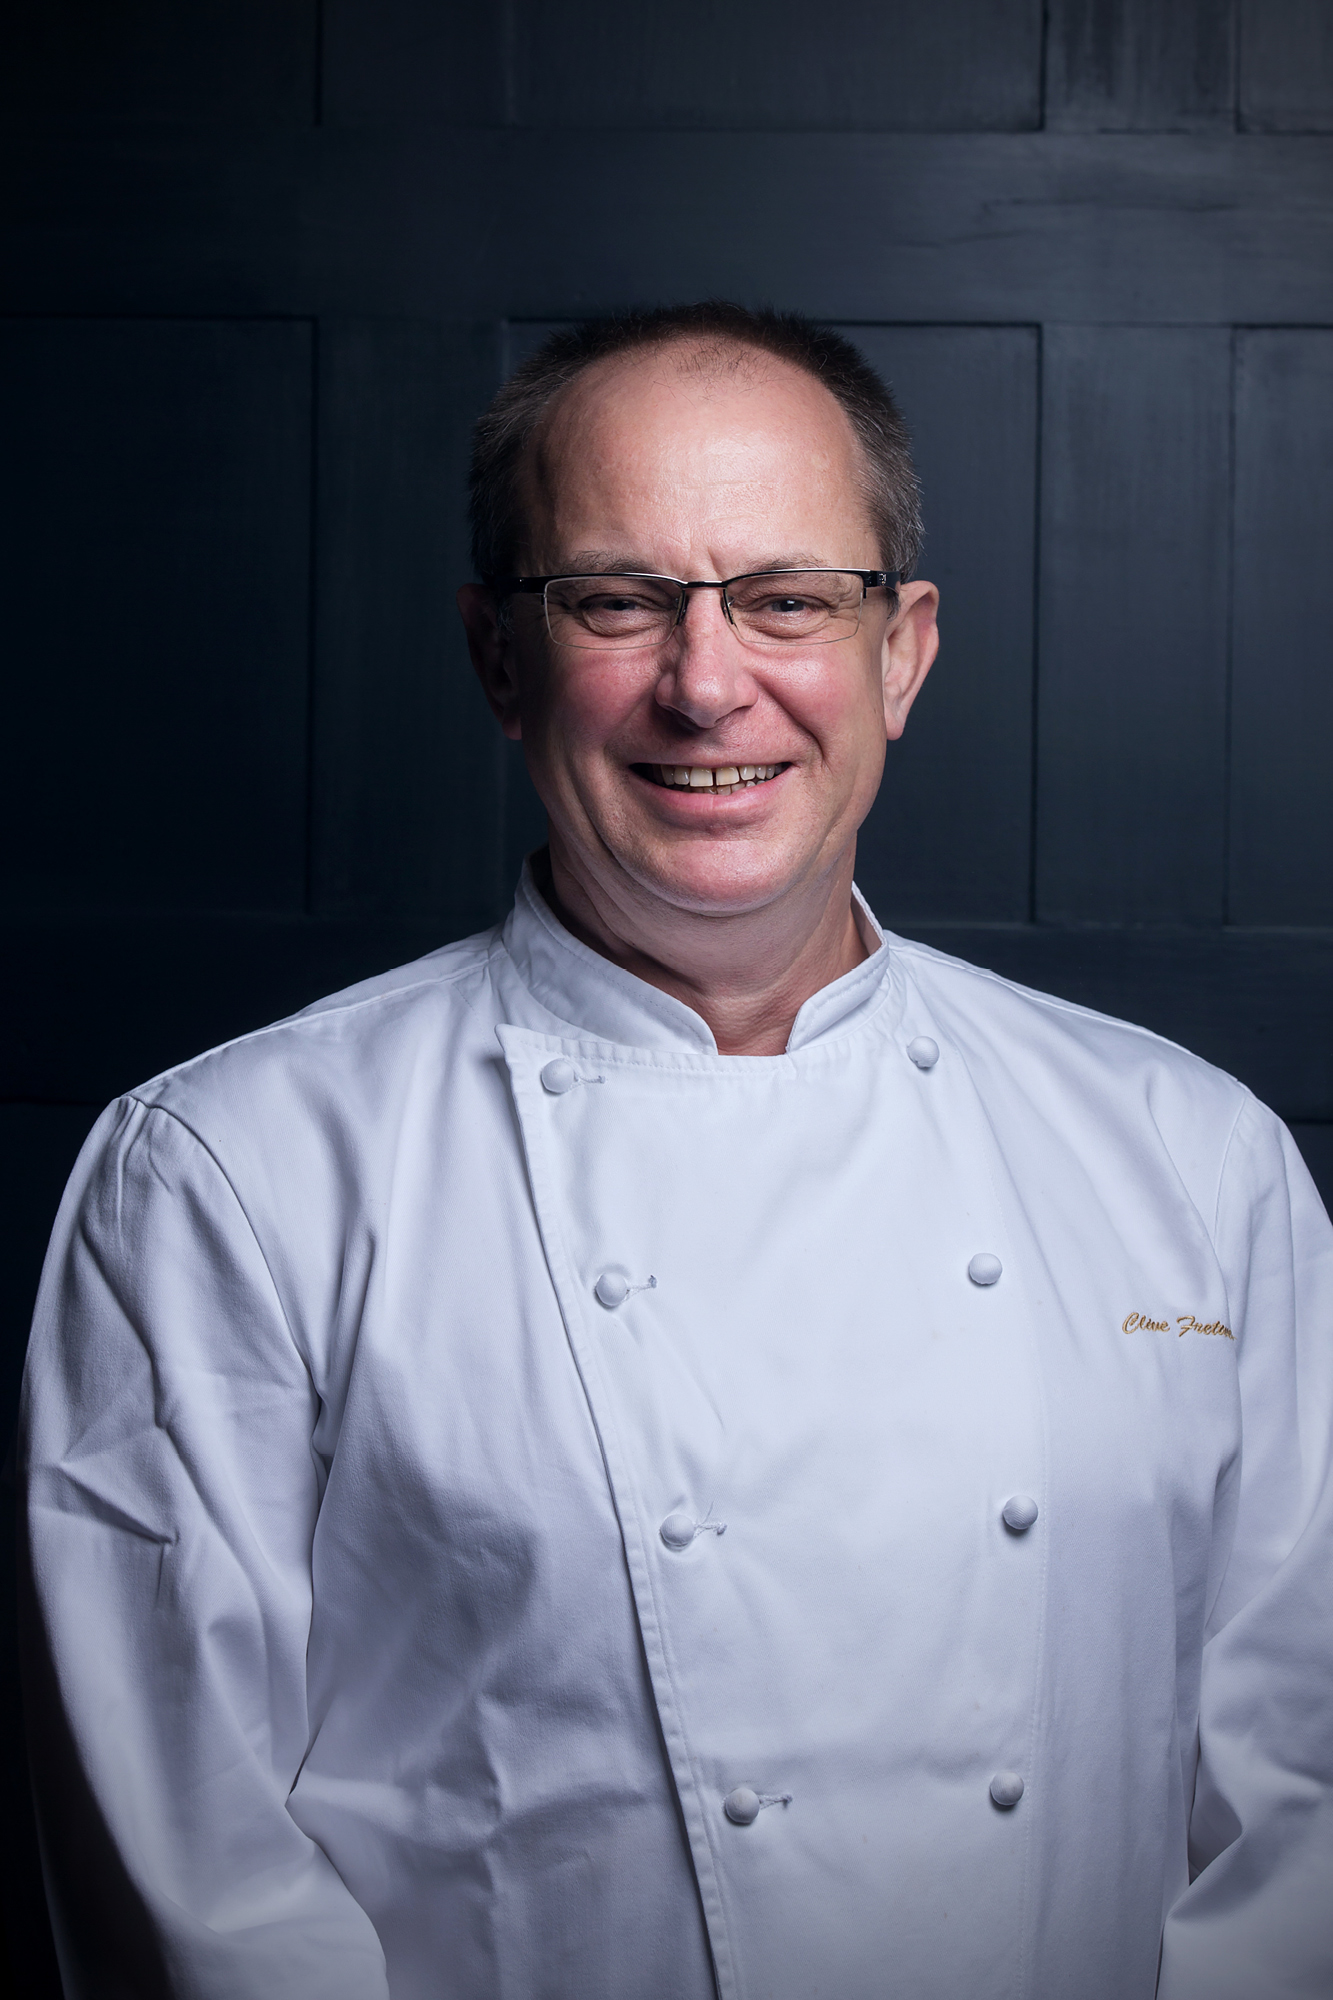 Clive Fretwell of Brasserie Blanc